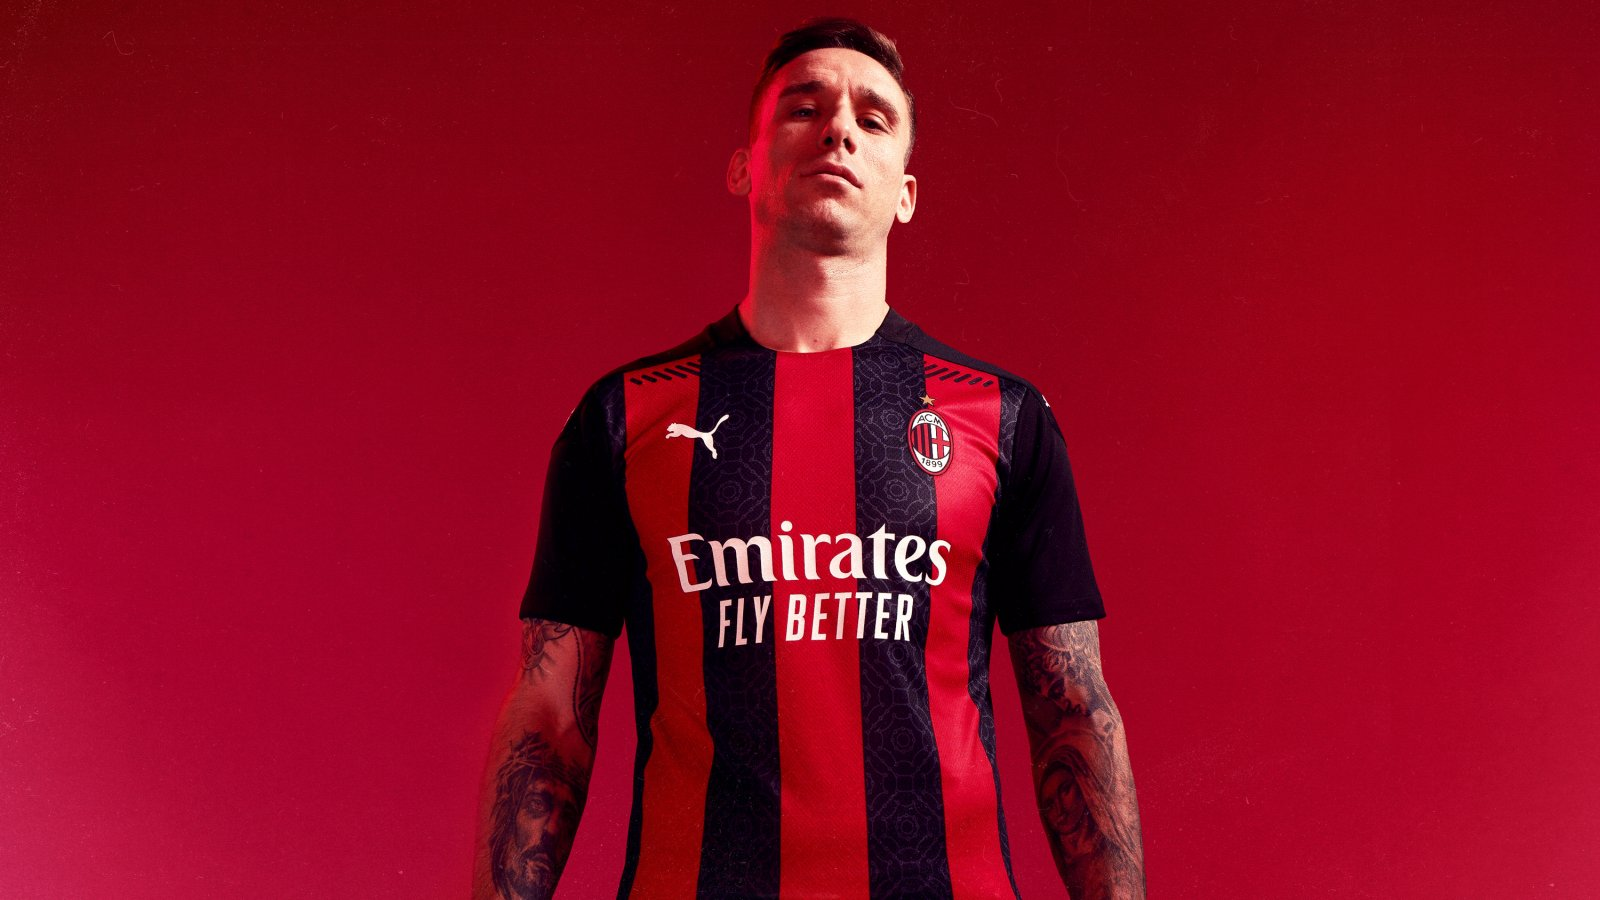 New Ac Milan Shirt Sees 1700 Percent Increase In Sales Forza Italian Football